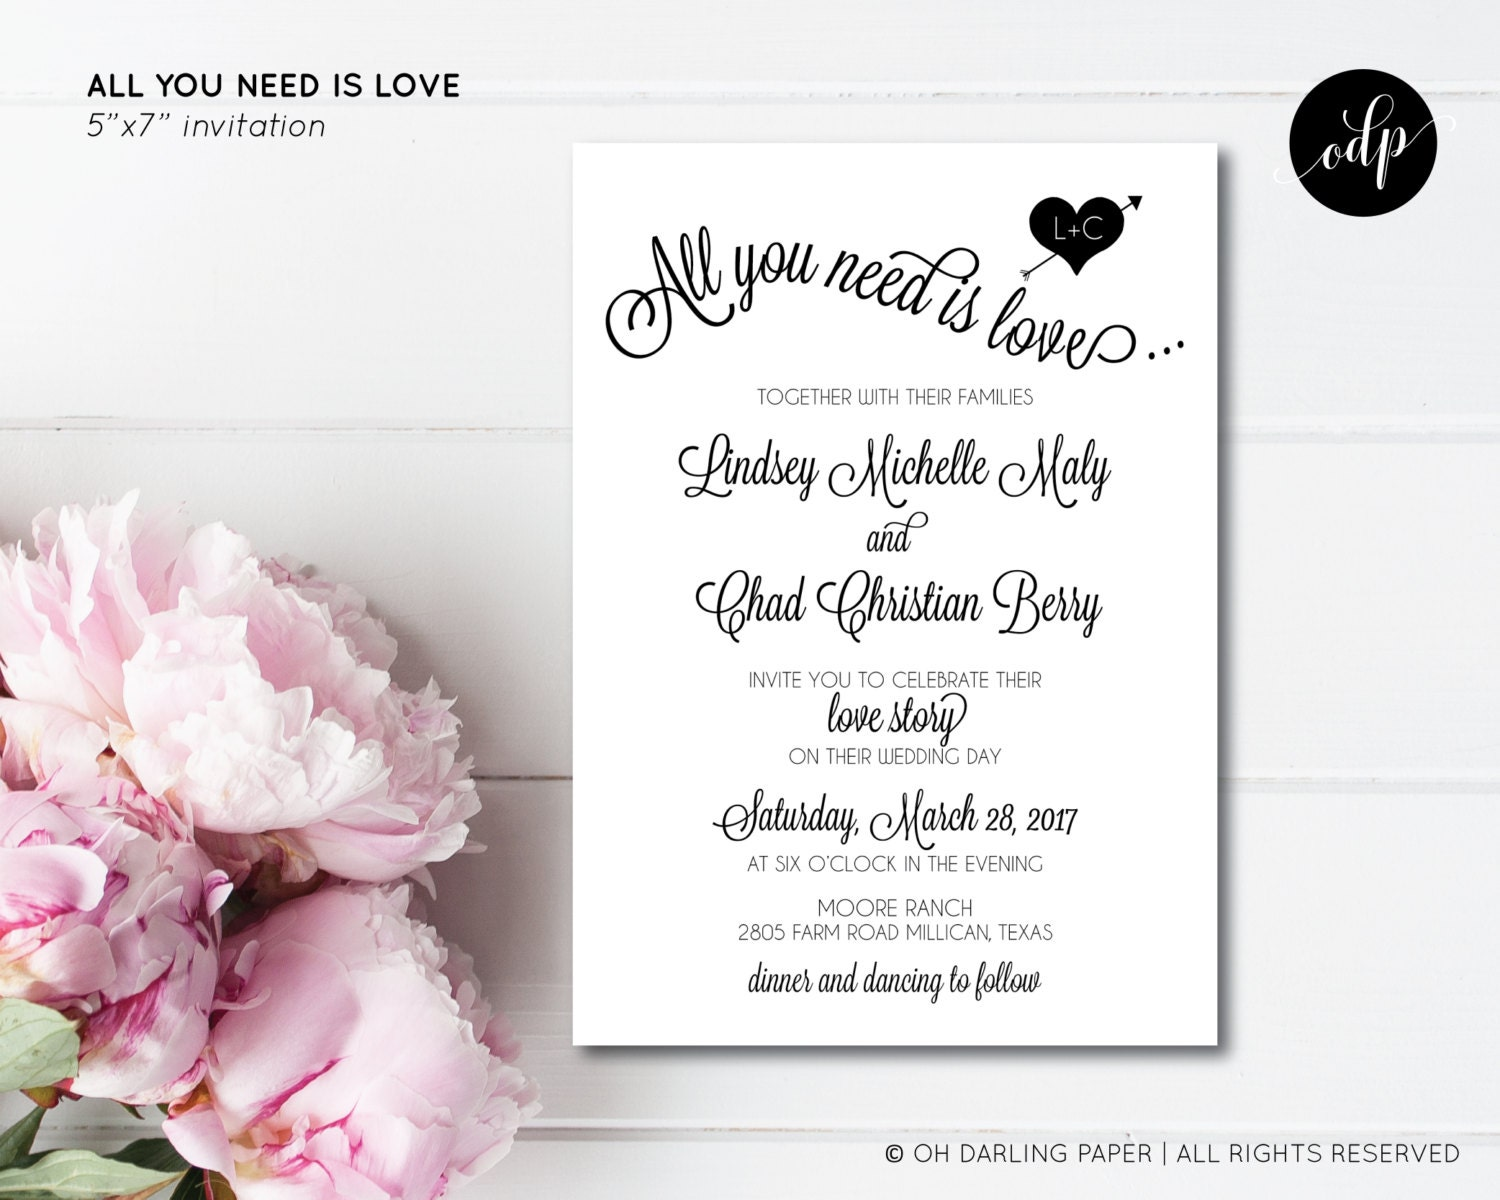 All You Need Is Love Wedding Invitations: Printable Wedding Invitation. All You Need Is Love. Beatles